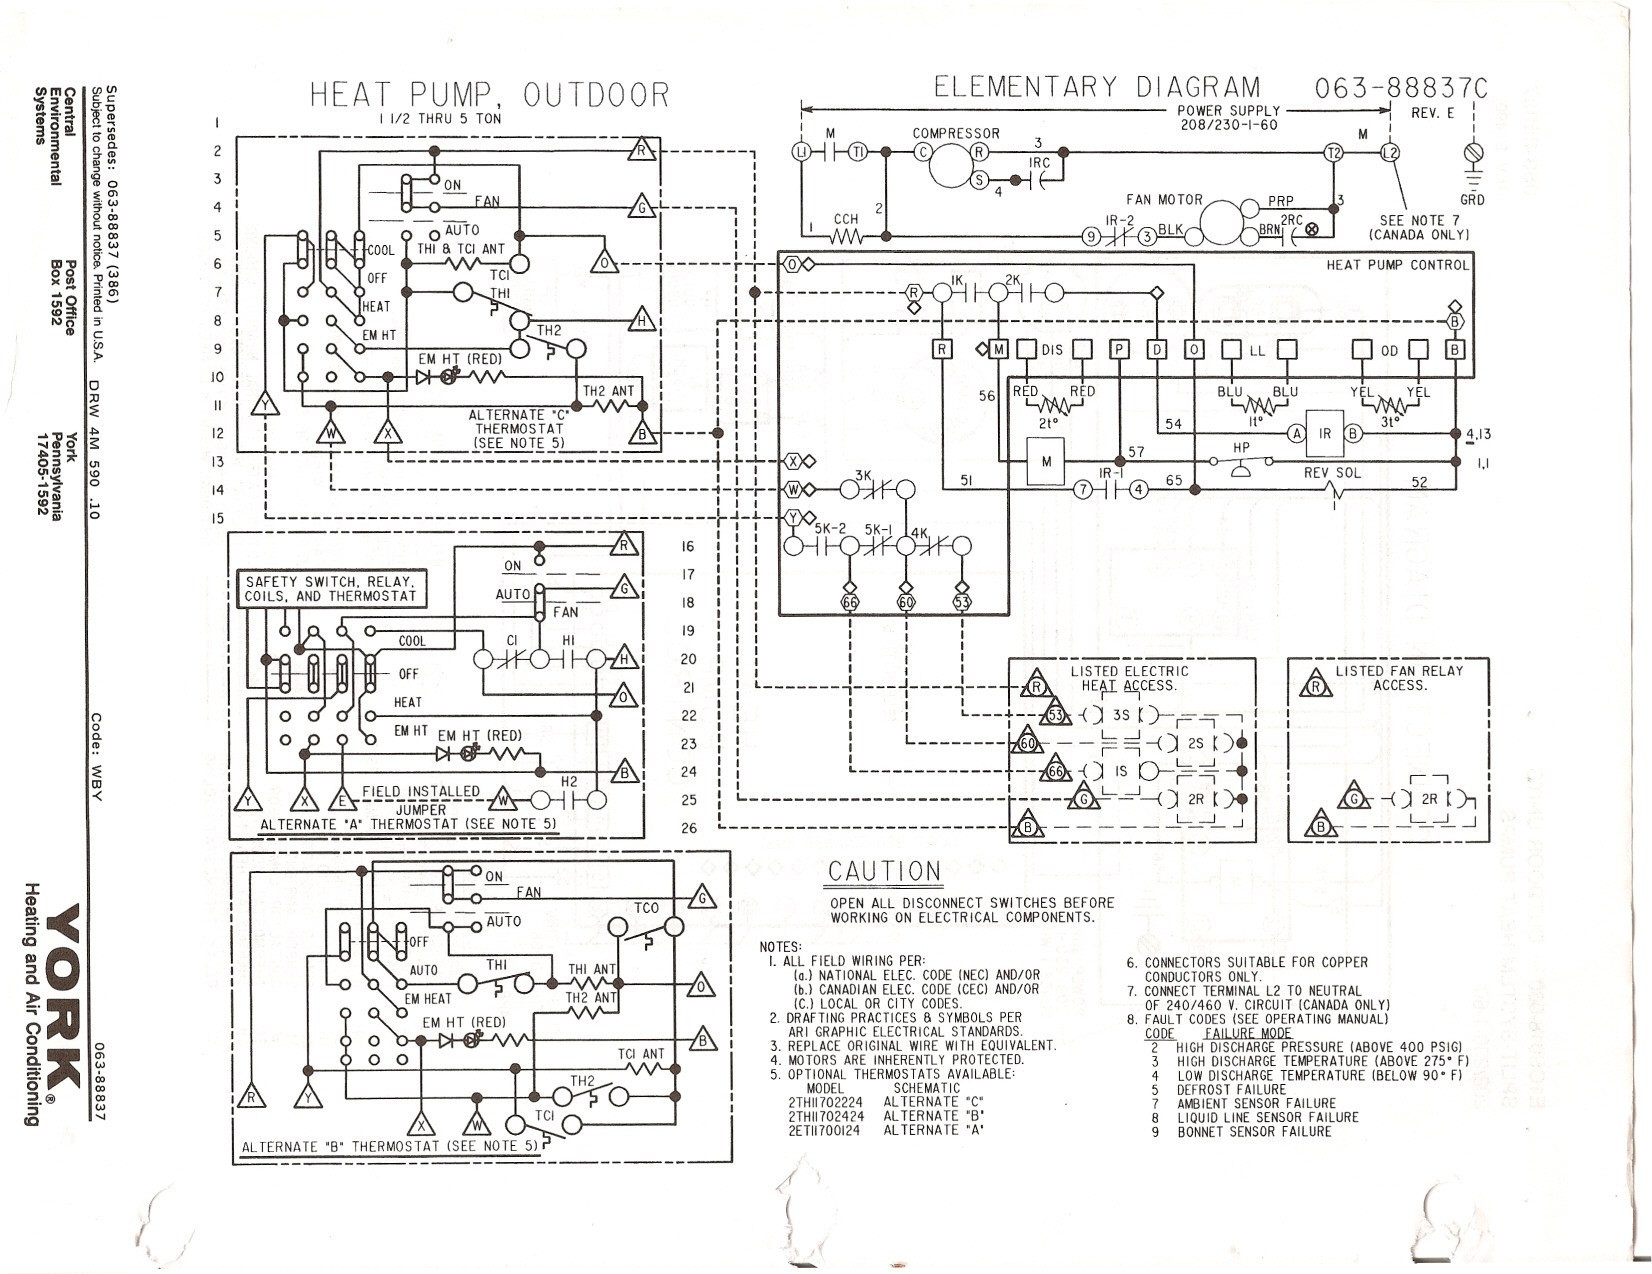 Older York Air Handler Wiring Diagram | Manual E-Books - York Air Handler Wiring Diagram